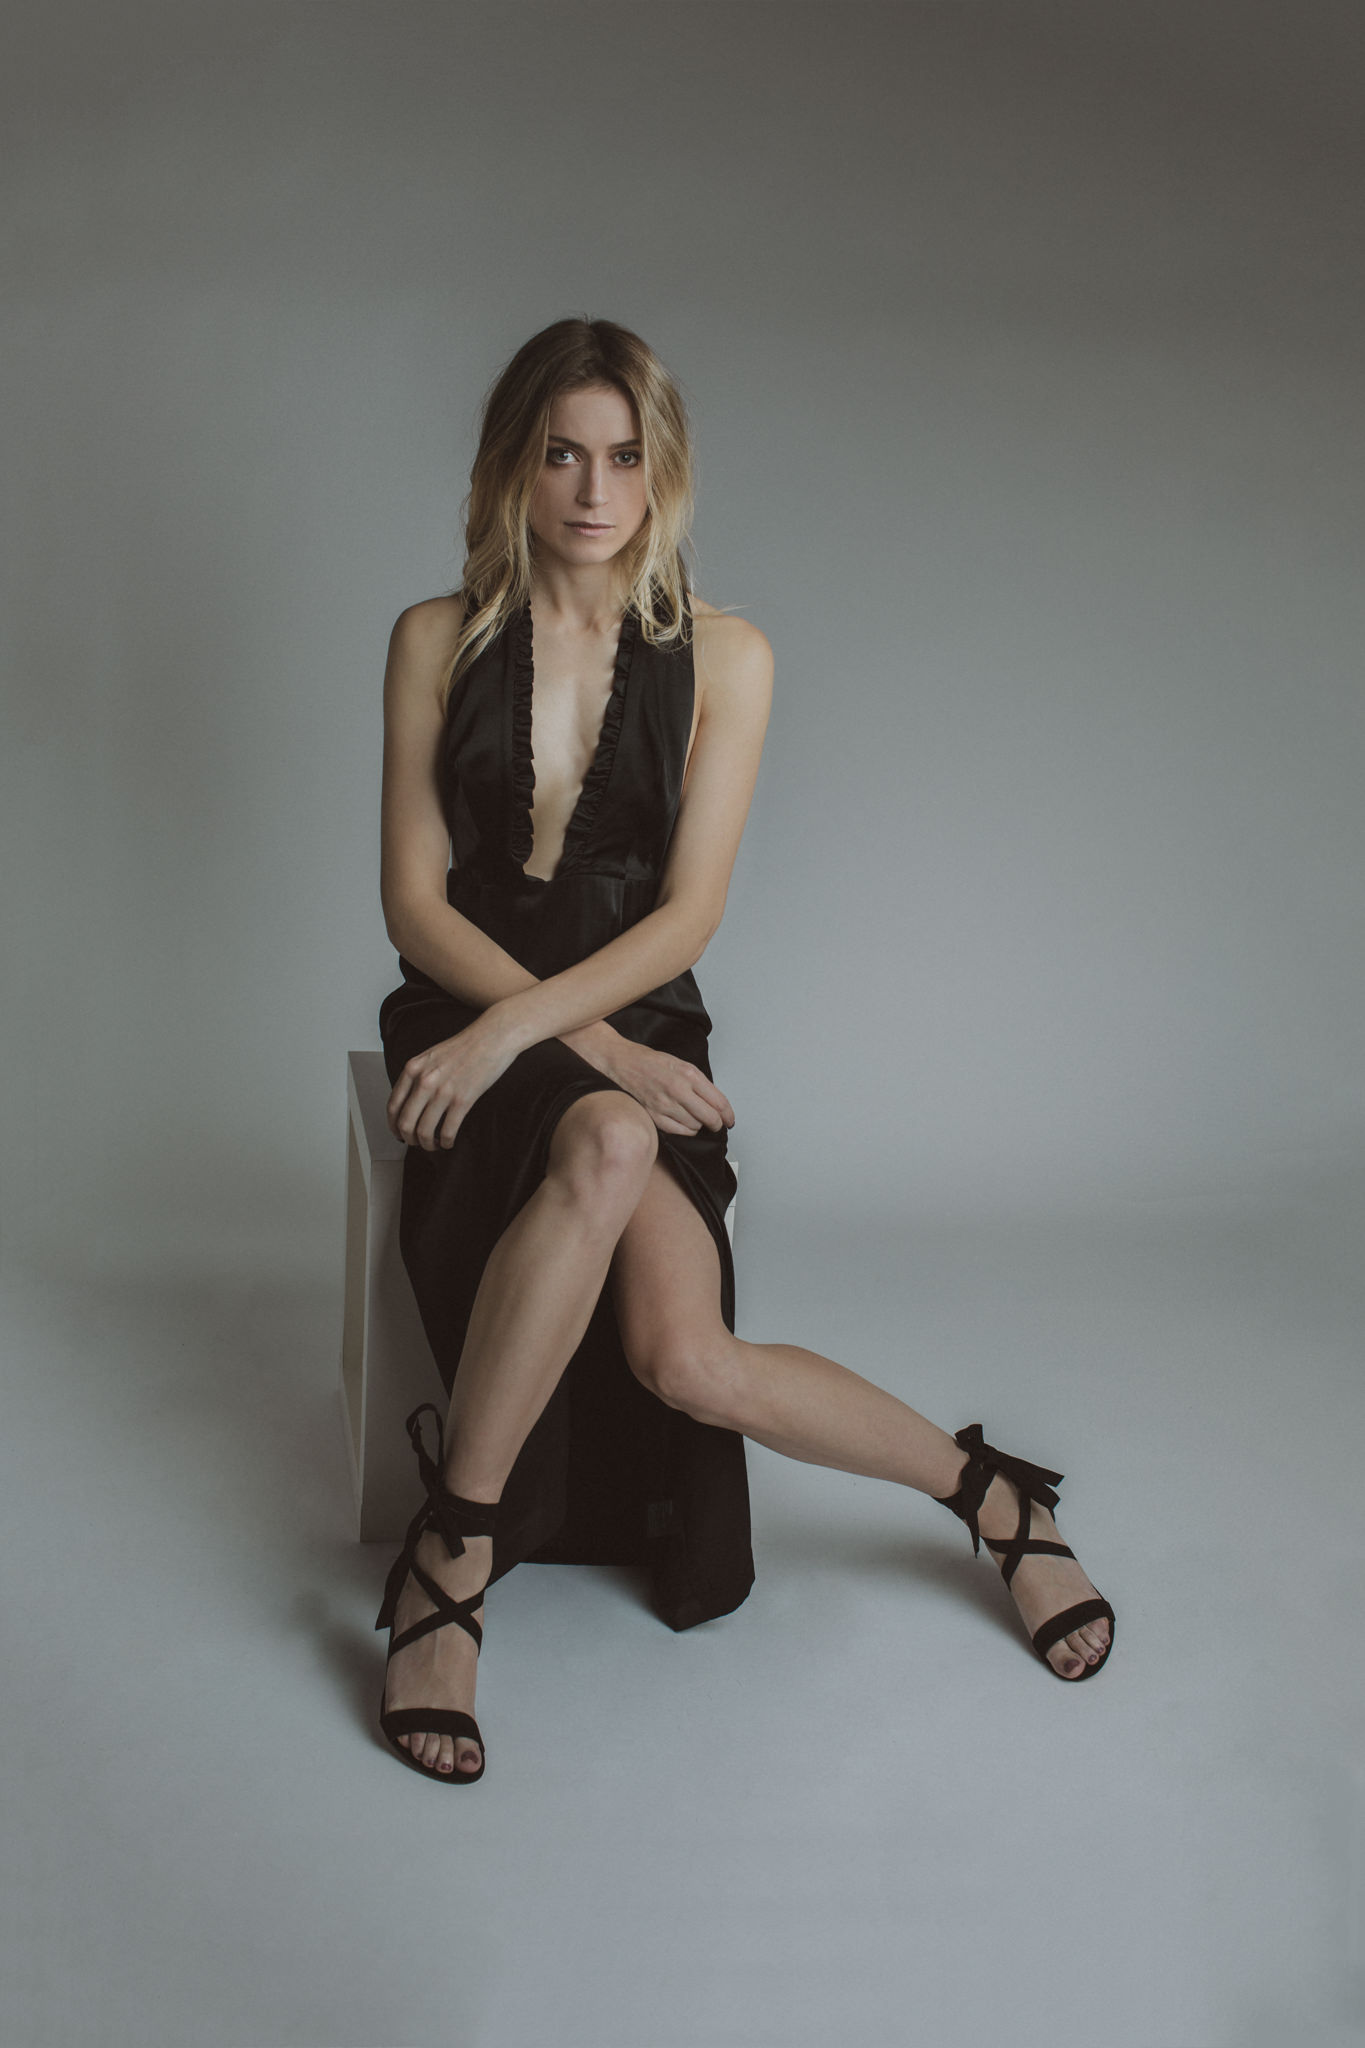 Beauty and Fashion Photographer - black H&M dress with strappy heels